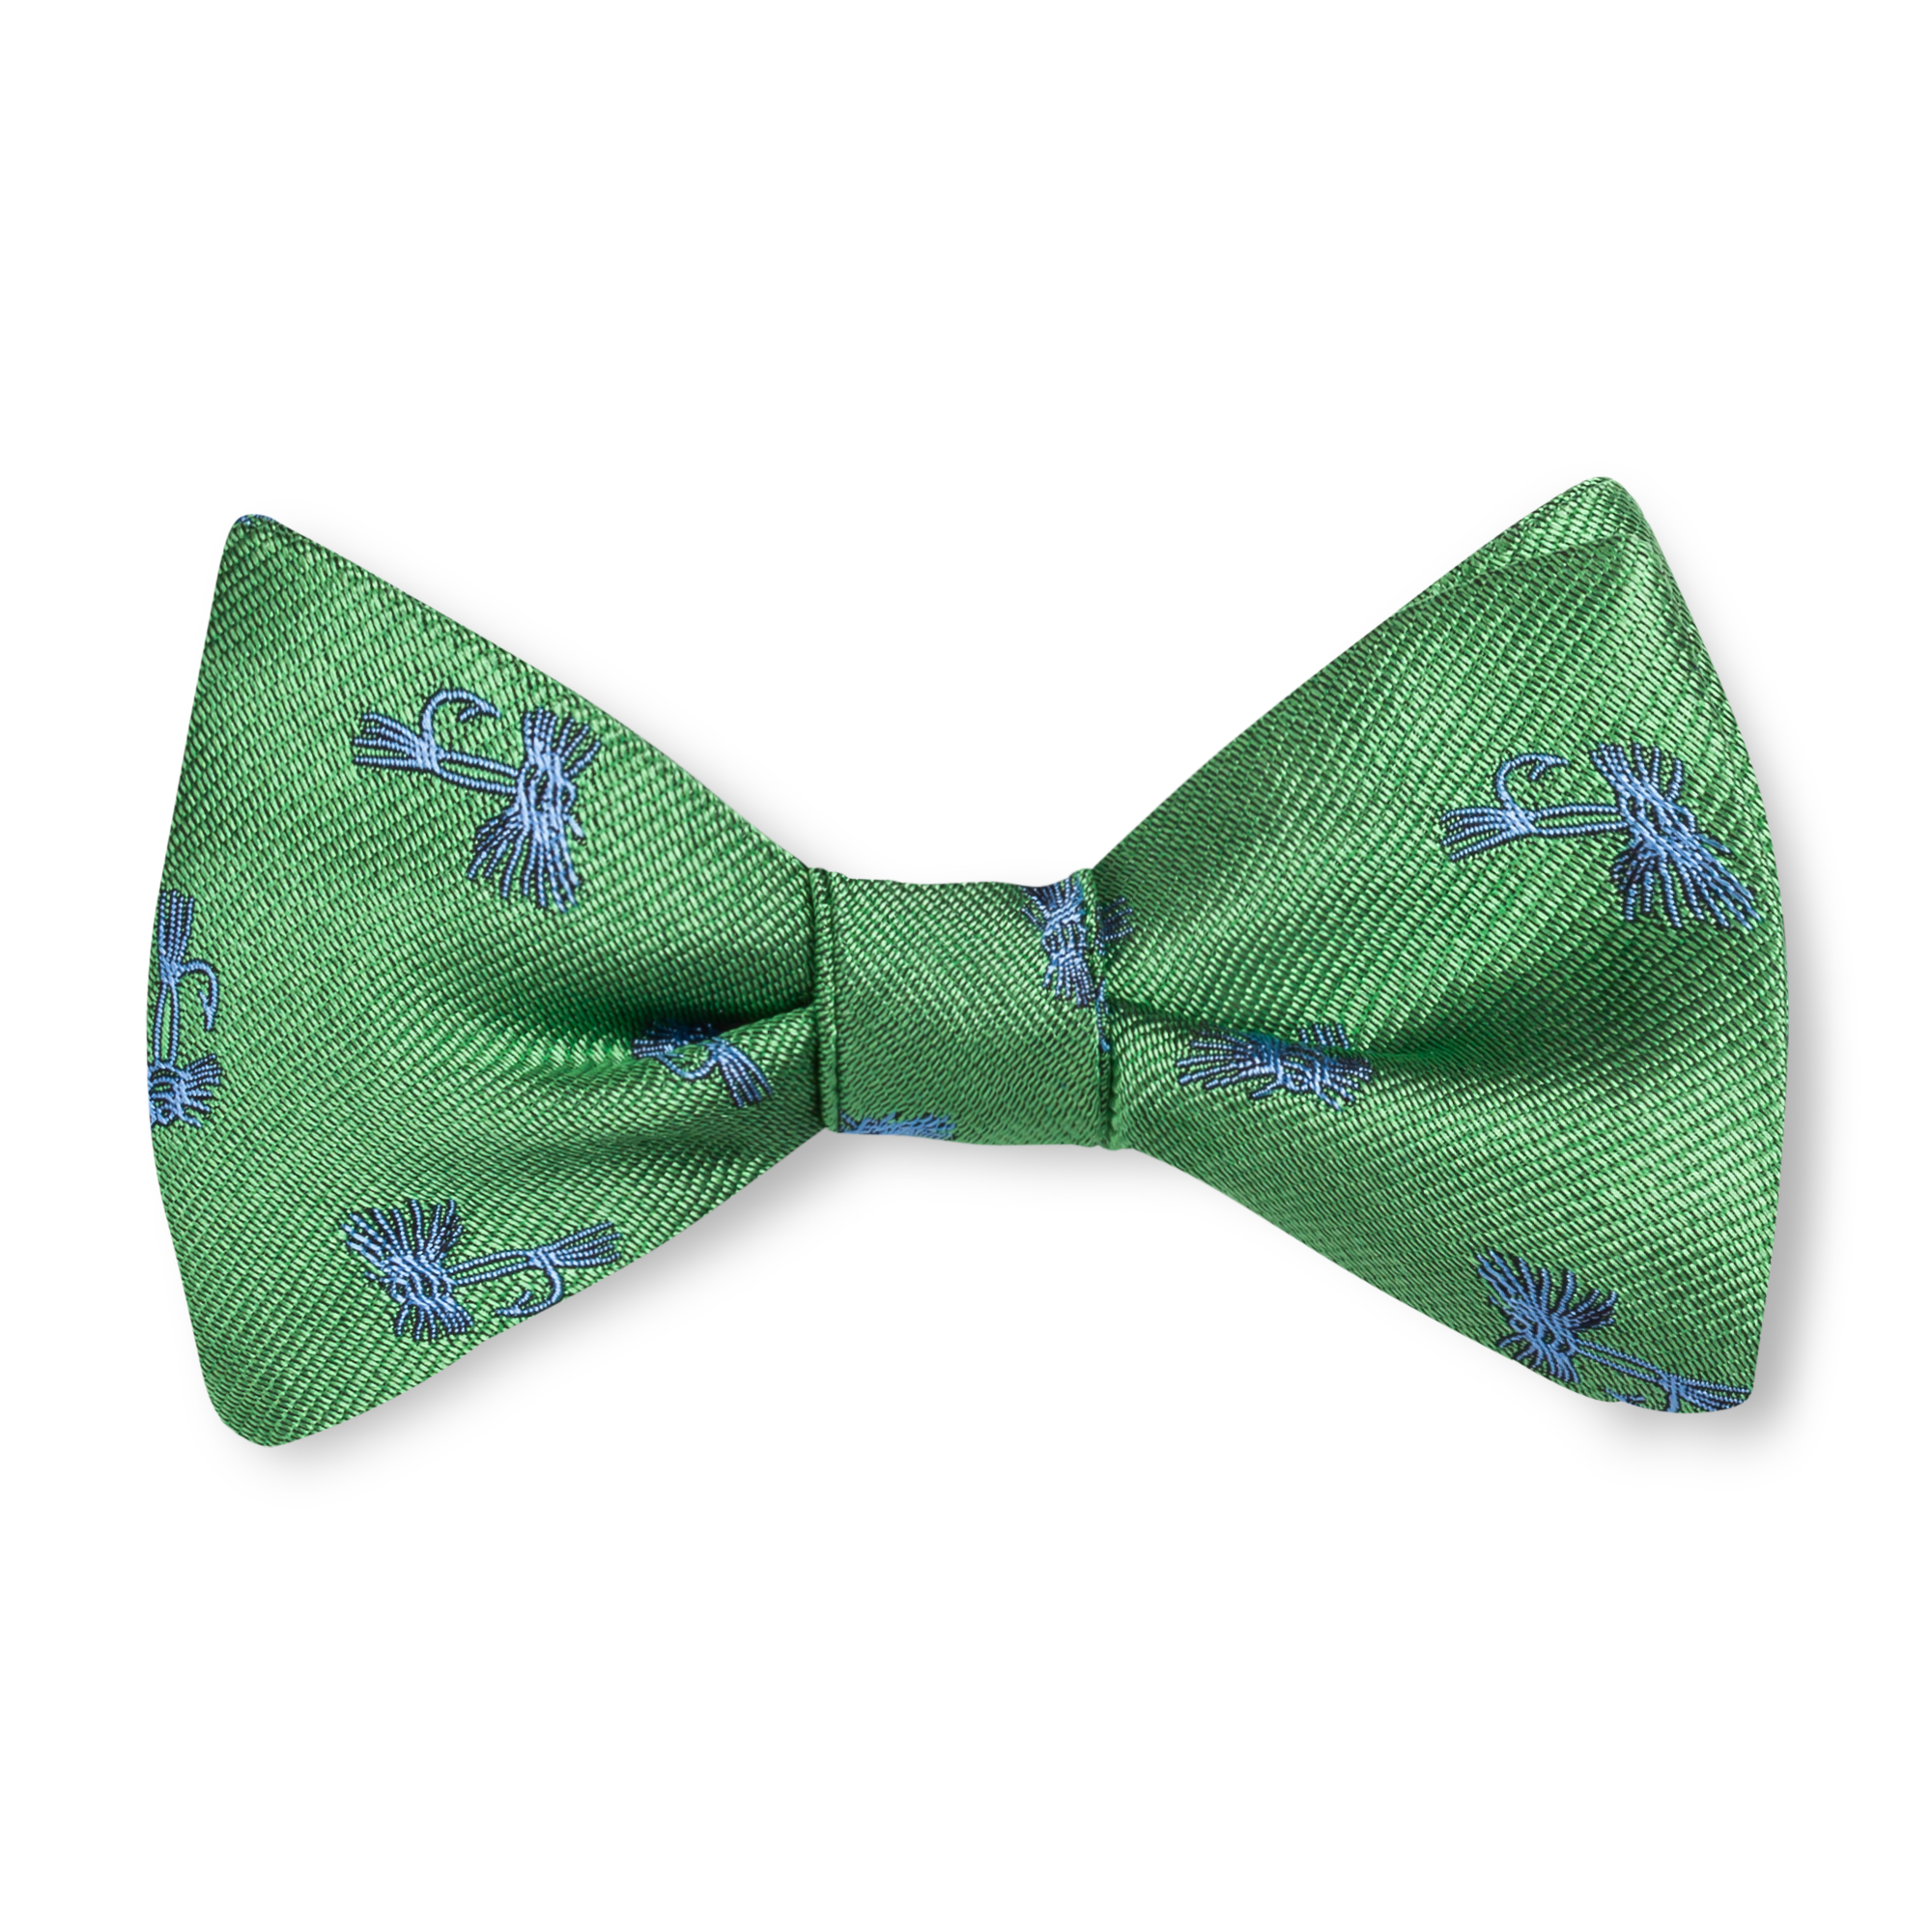 The Fly Bow Tie – Green with Sky